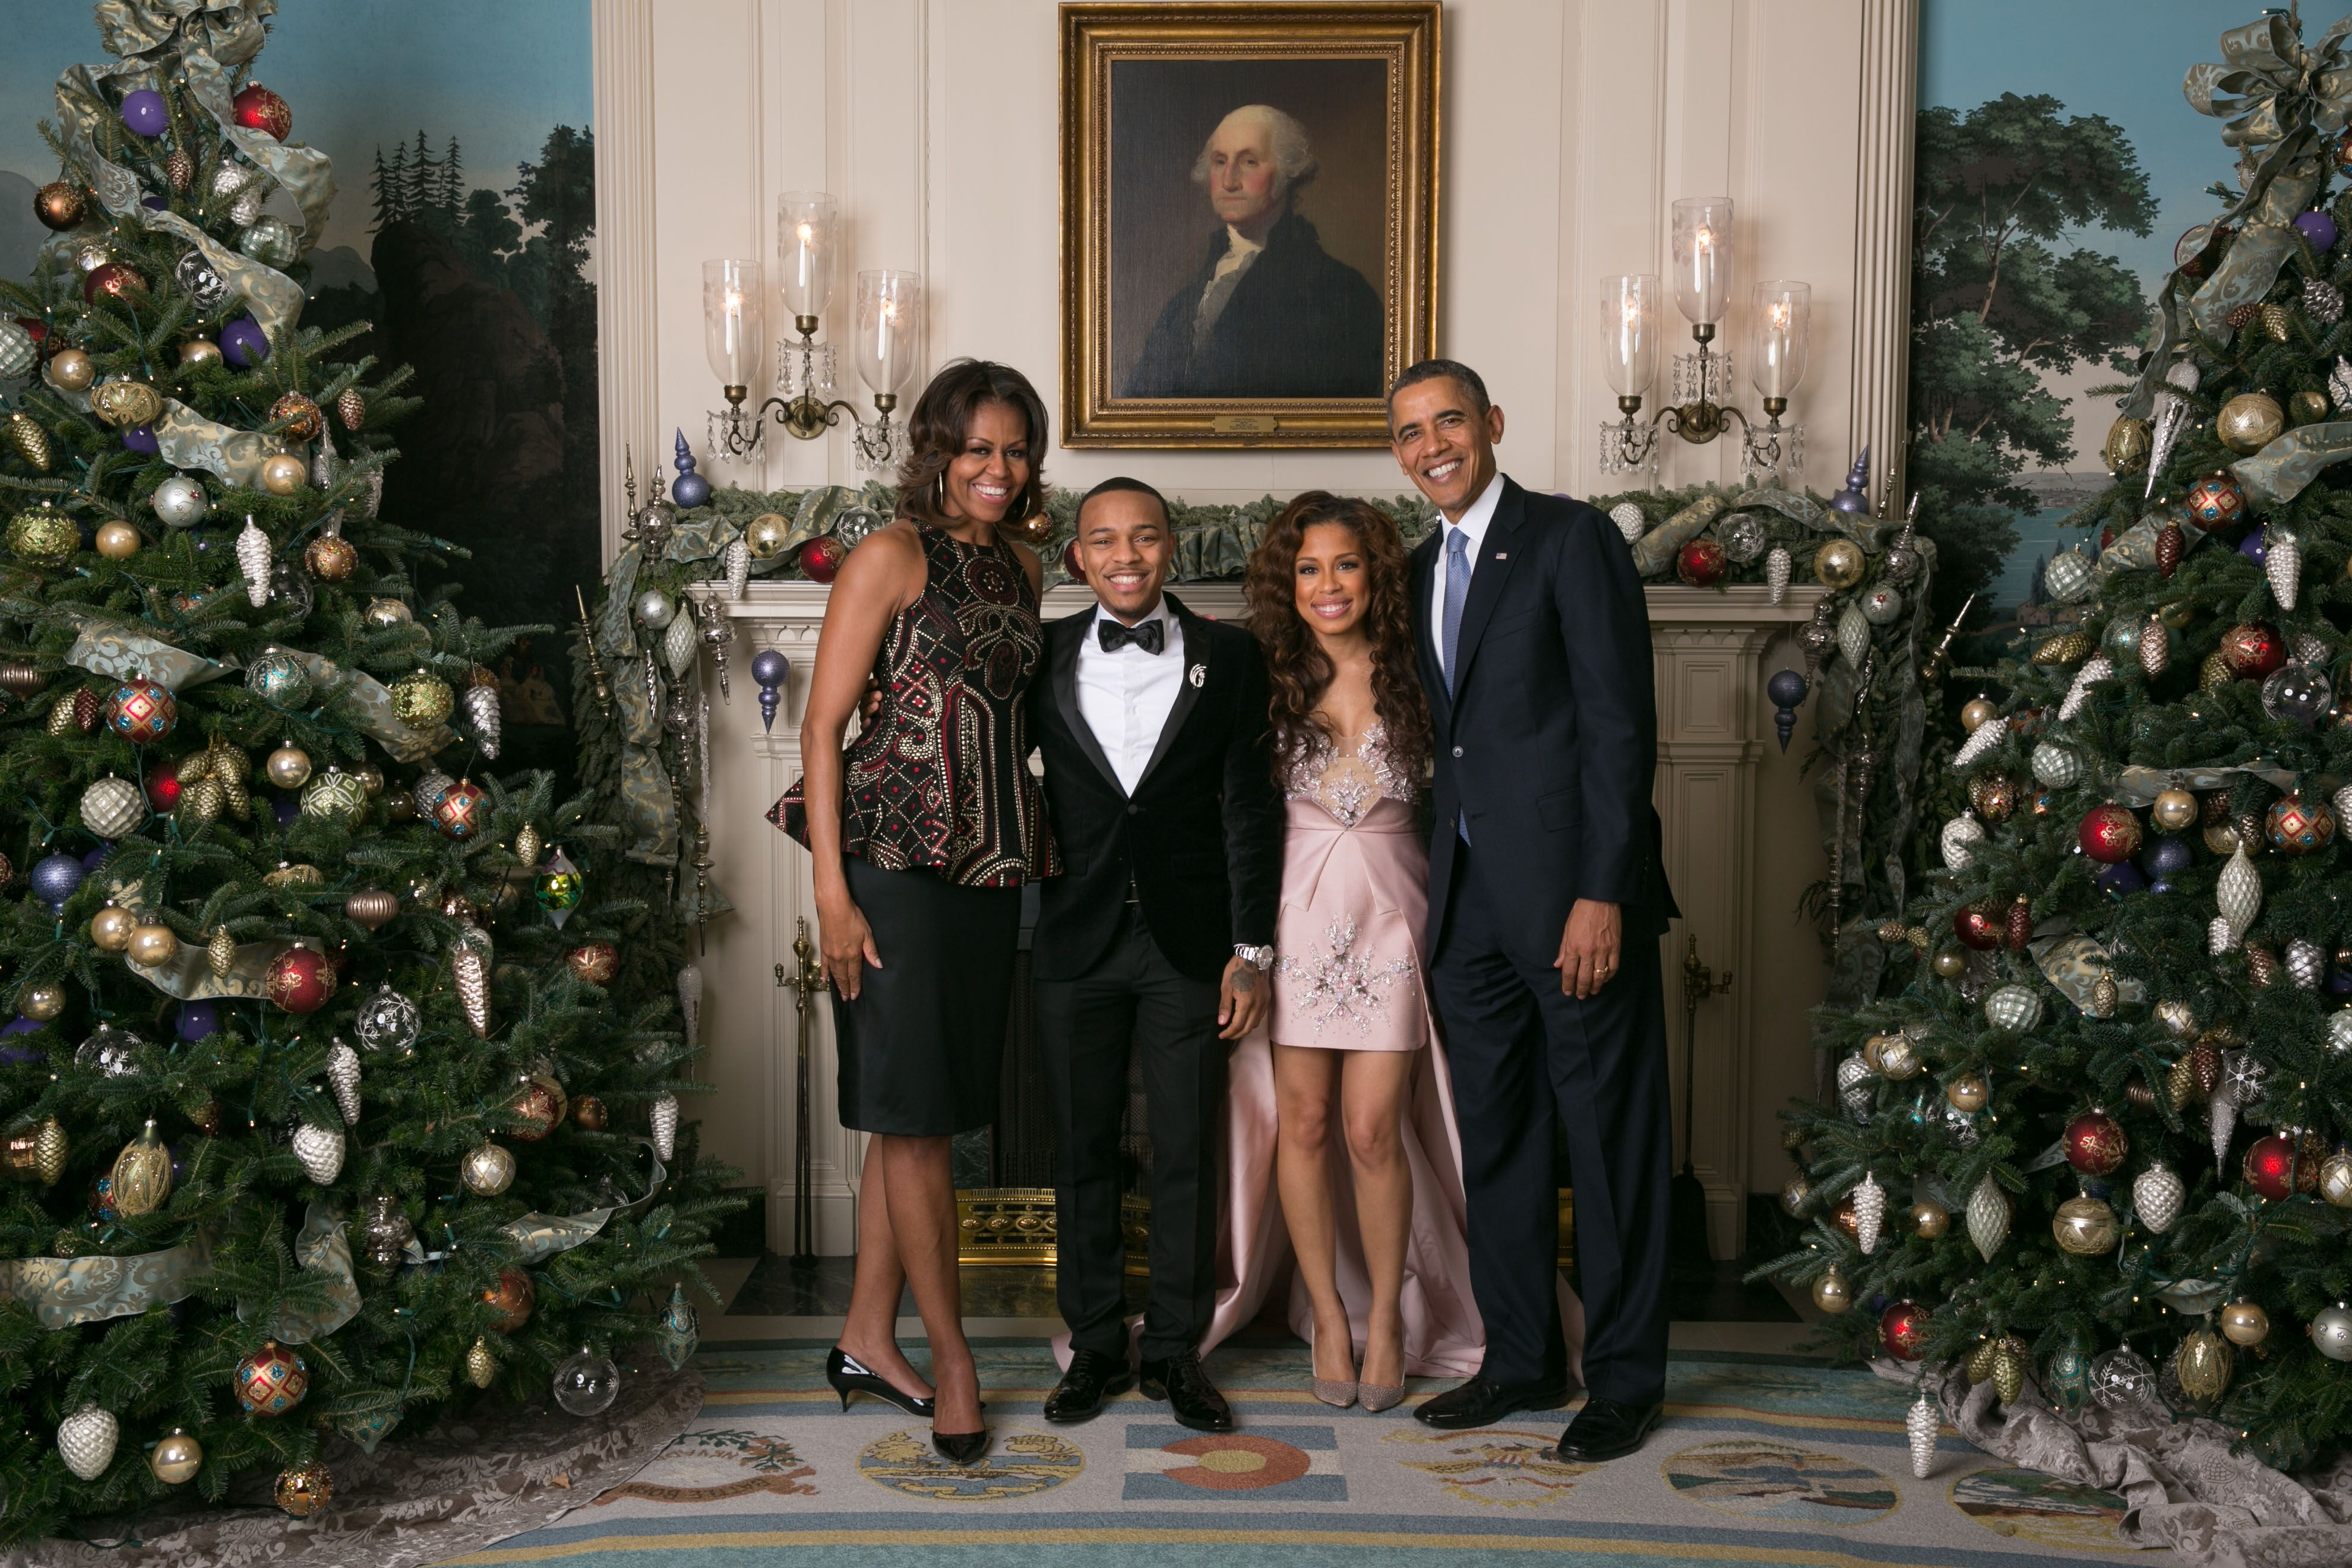 Keshia Chante Invited To The White House Christmas Party With